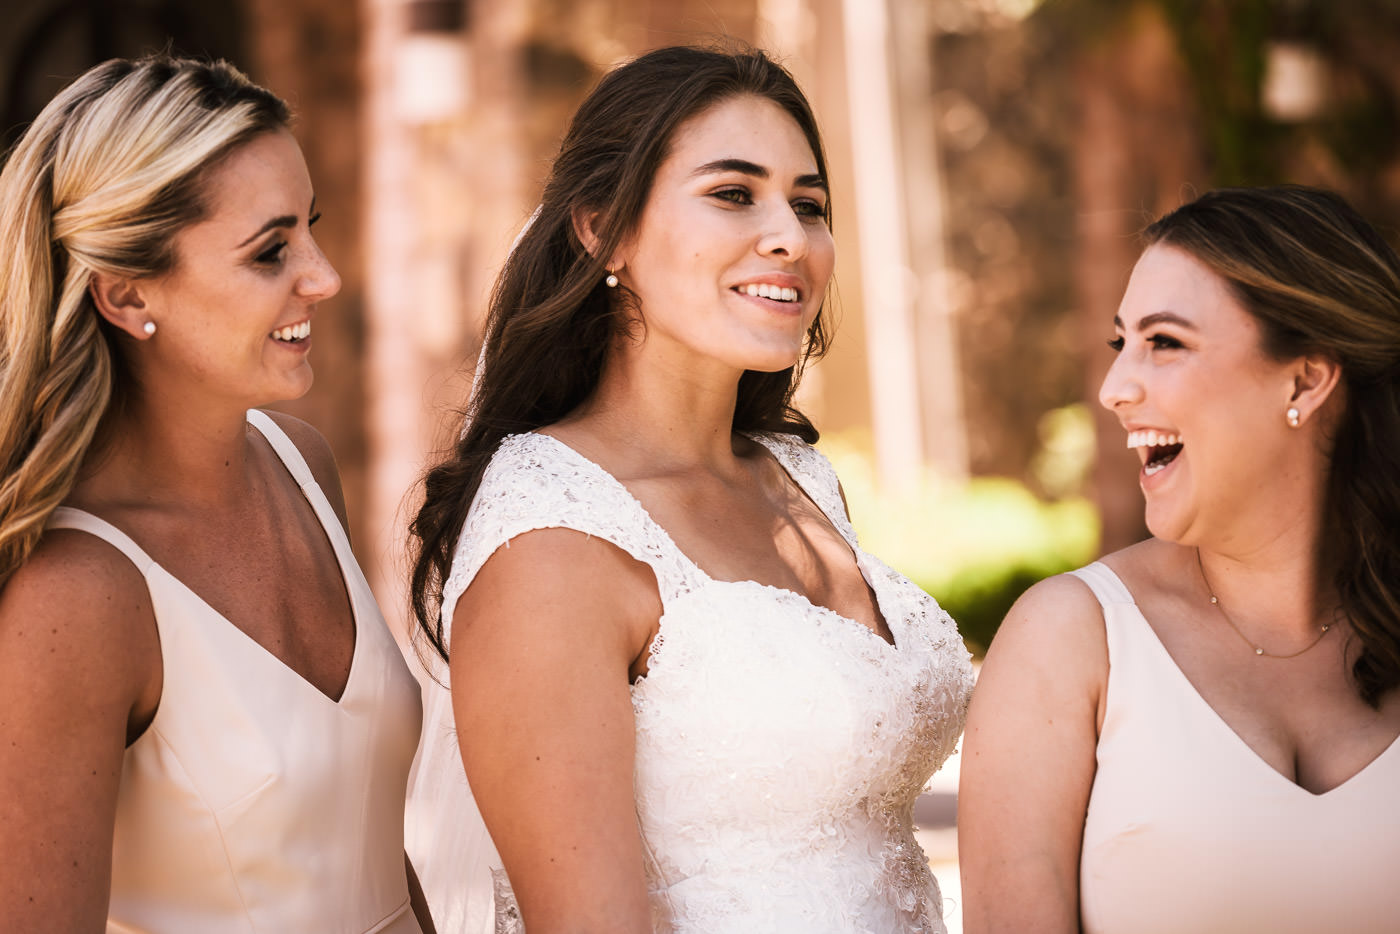 Bridesmaids laugh with the bride before the ceremony.